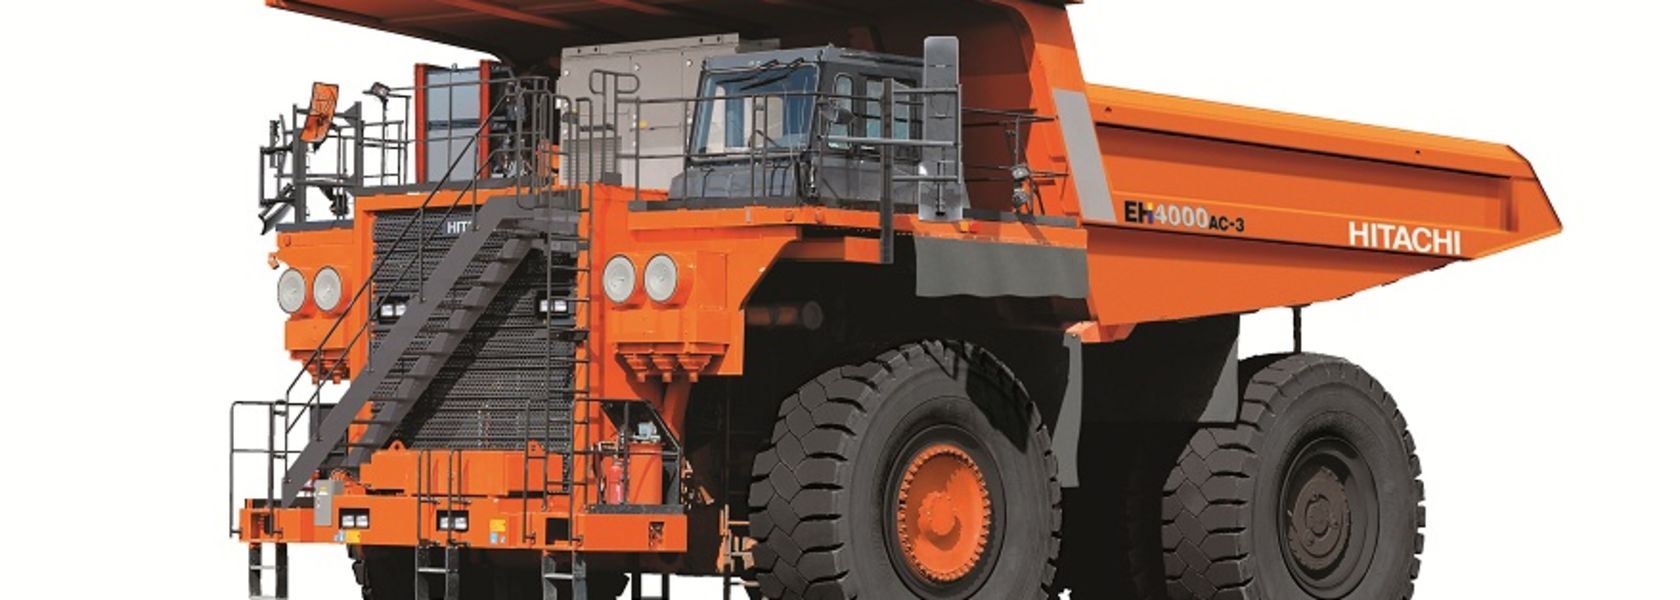 Hitachi launches new trucks, fortifies mining business